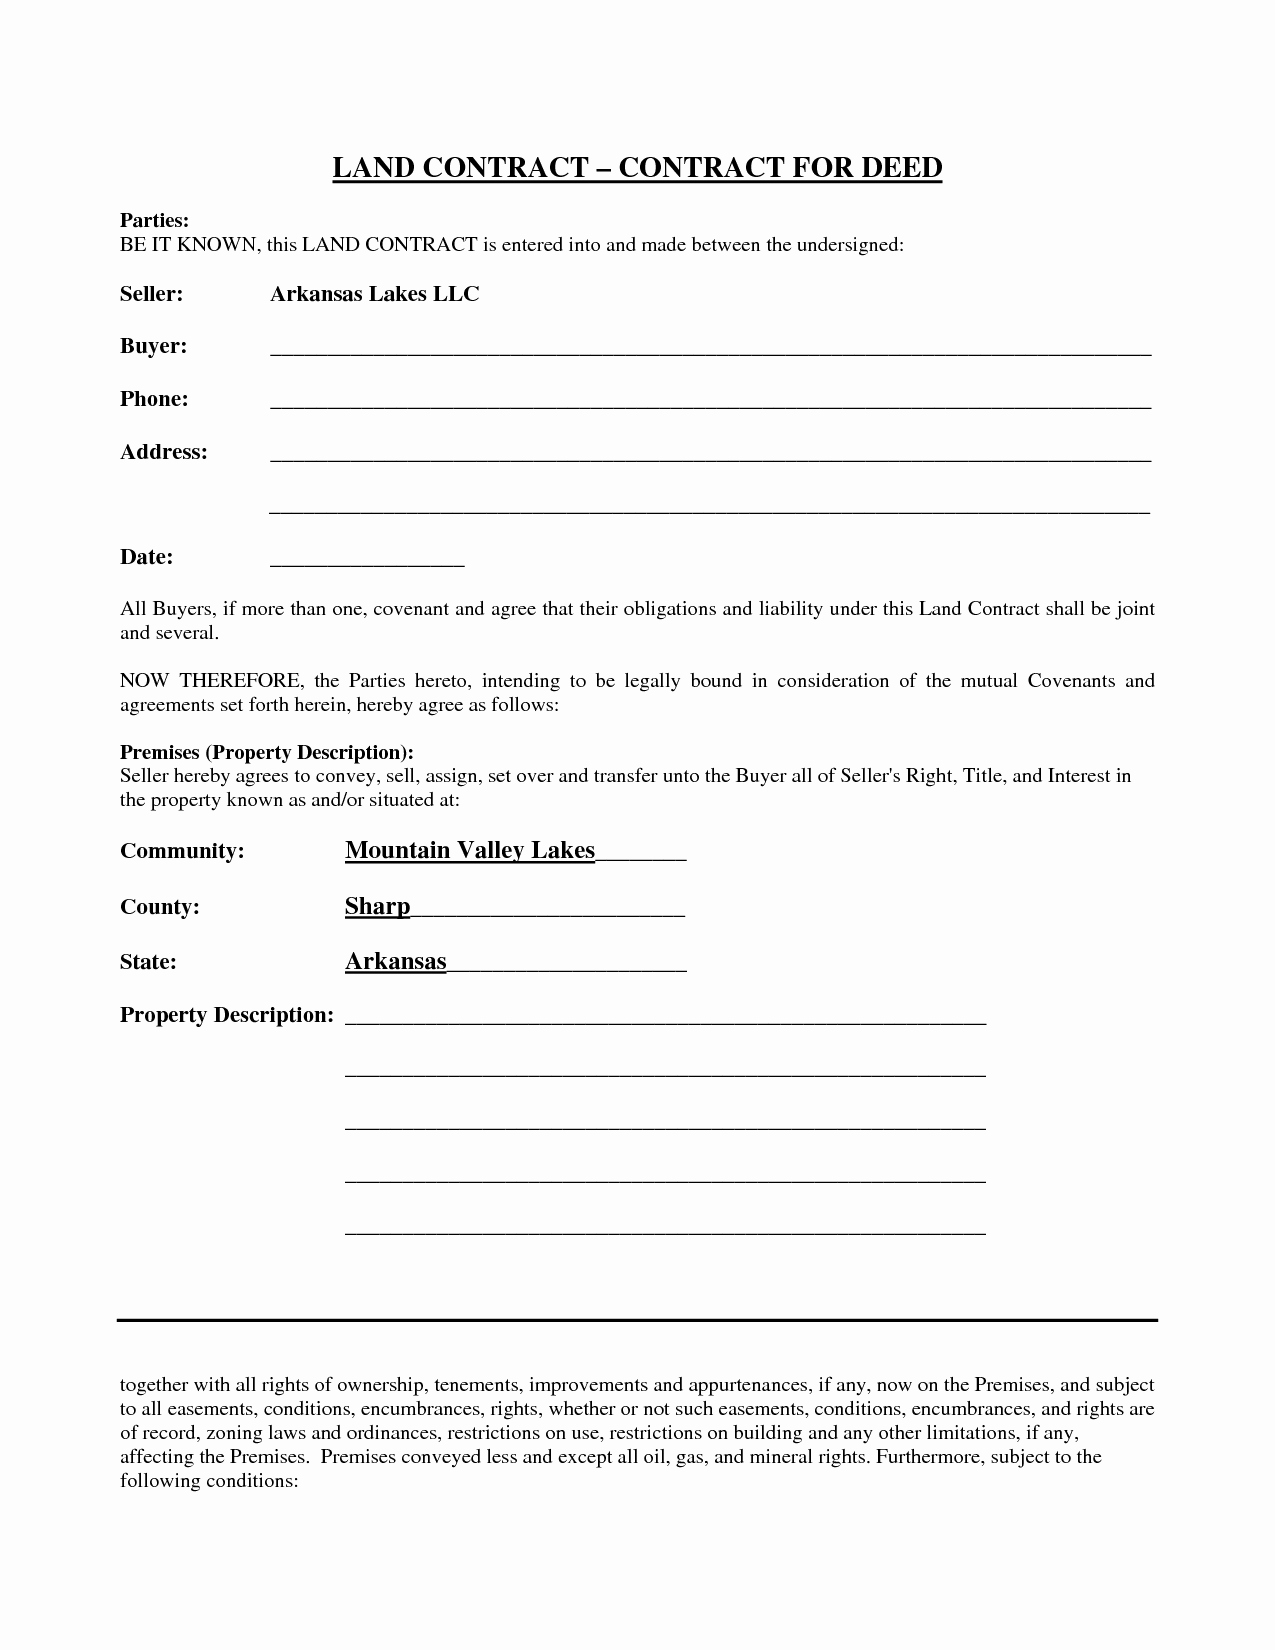 Simple Land Purchase Agreement form Elegant 38 Brilliant Samples Blank Contract forms Thogati